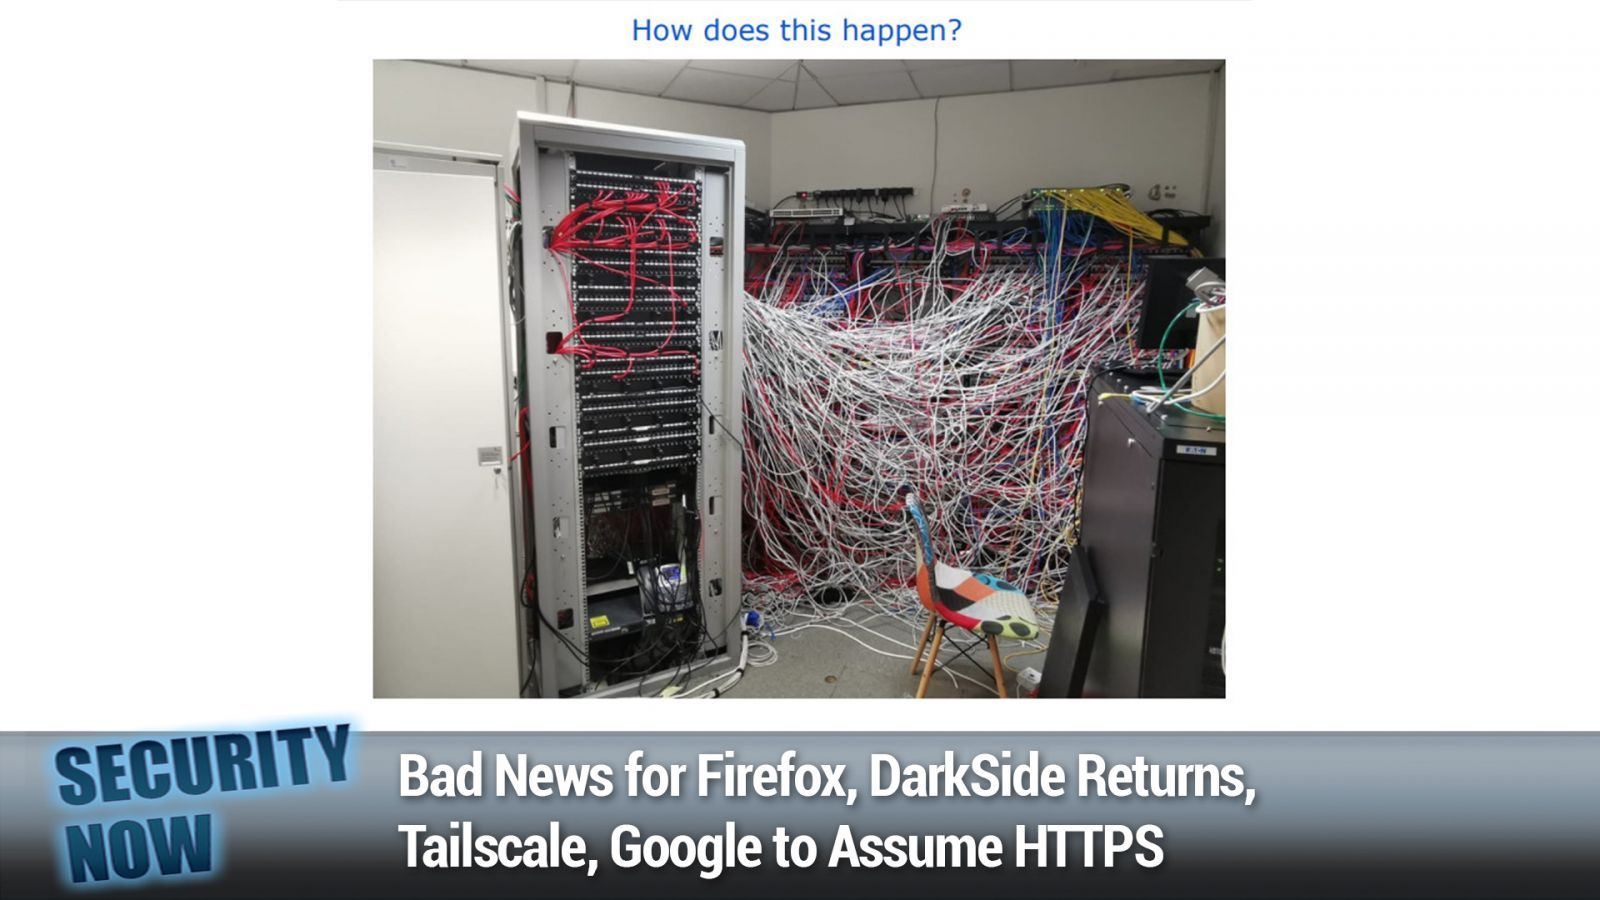 Bad News for Firefox, DarkSide Returns, Tailscale, Google to Assume HTTPS